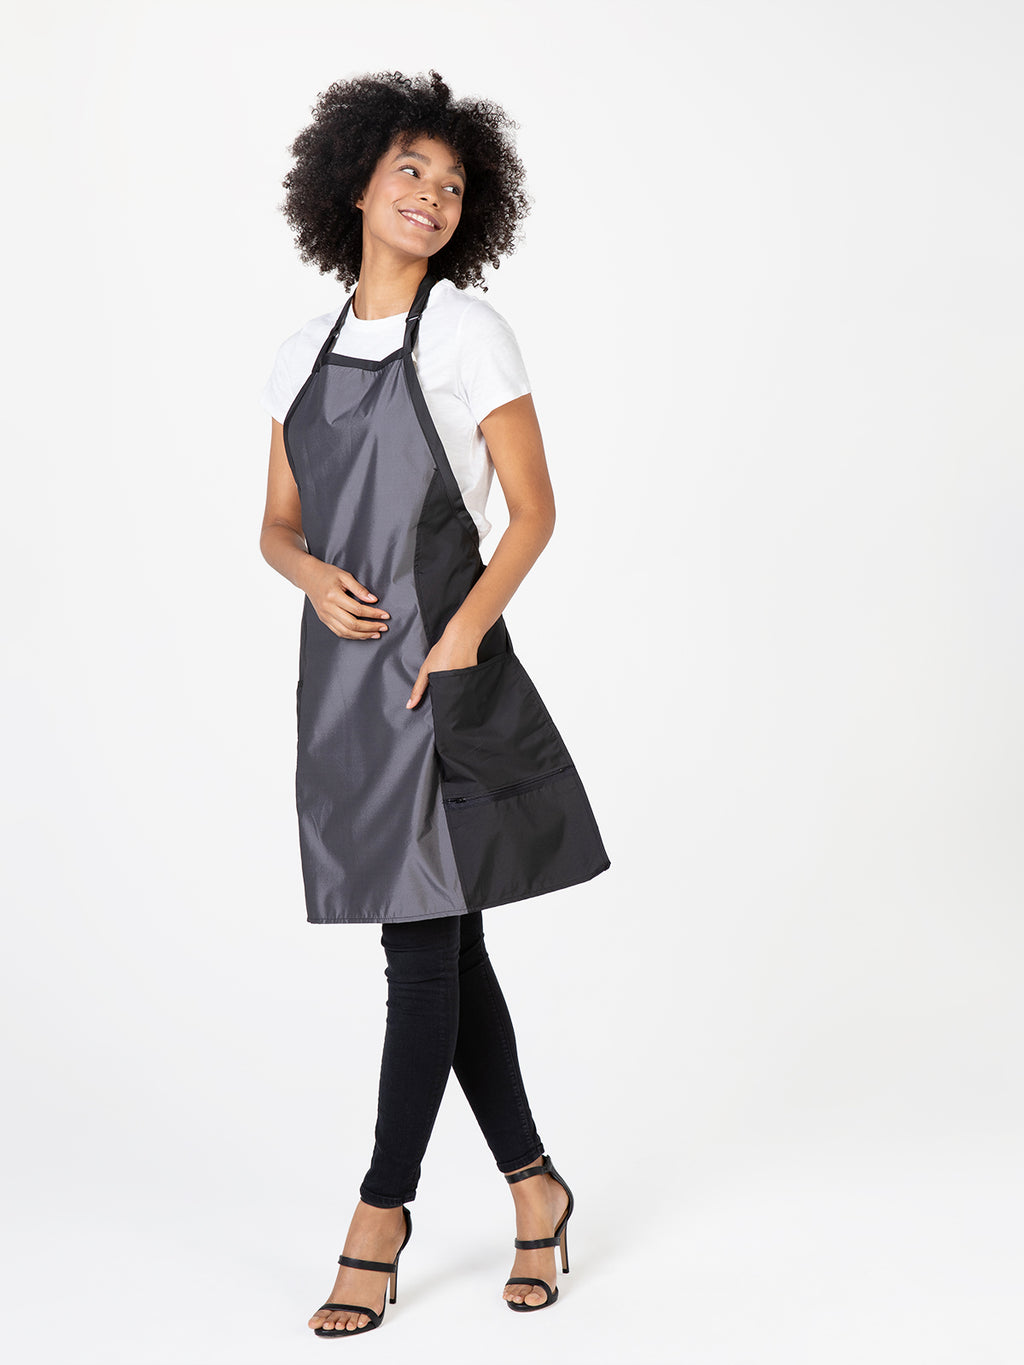 Bleachproof Apron Betty Dain